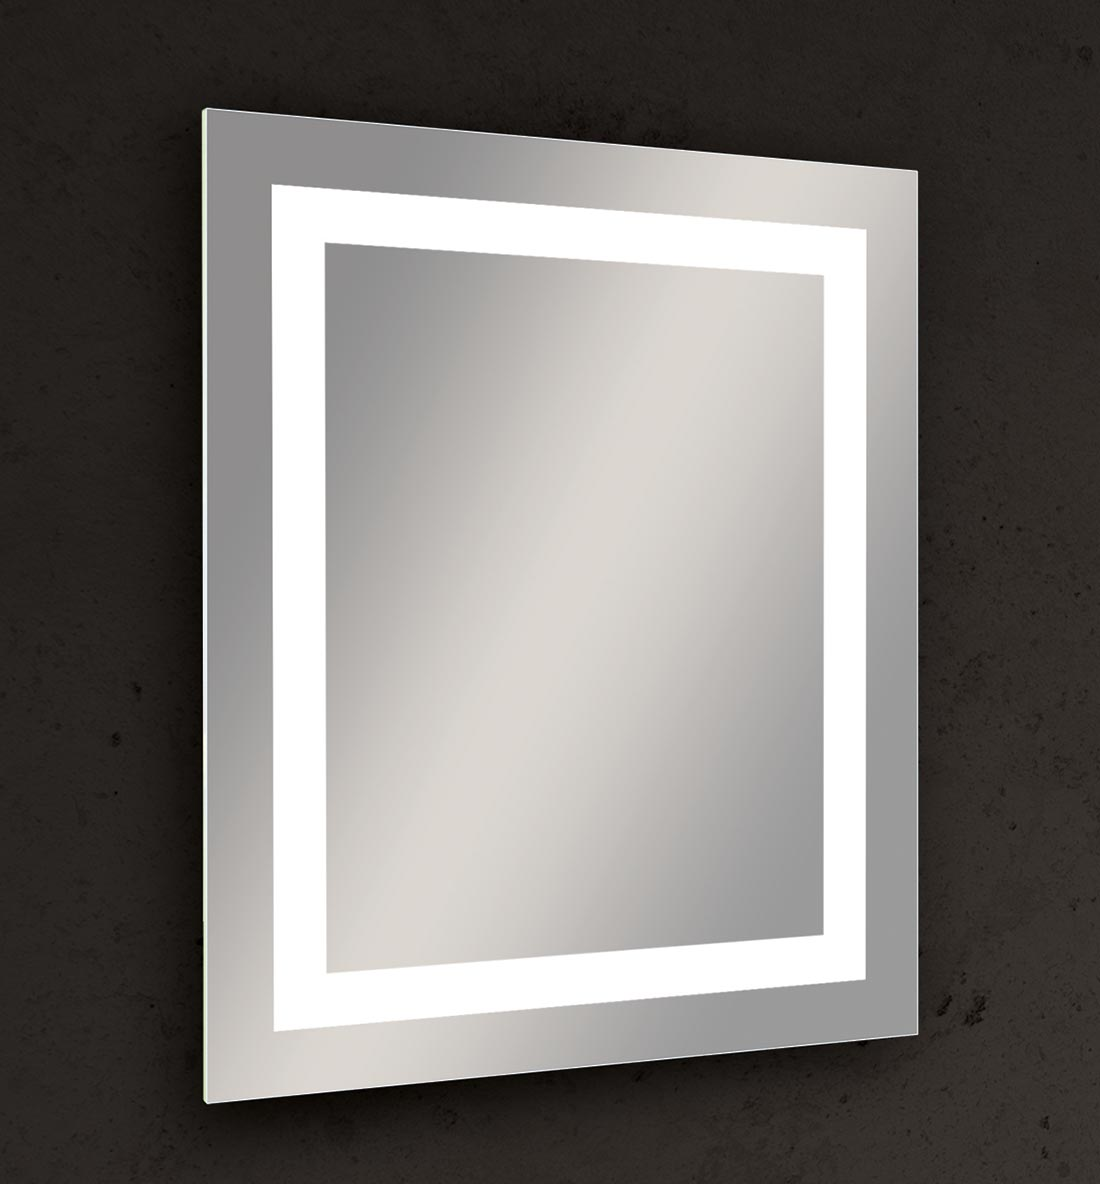 You can't go wrong with Seura's classic contemporary Allegro Lighted Mirror.